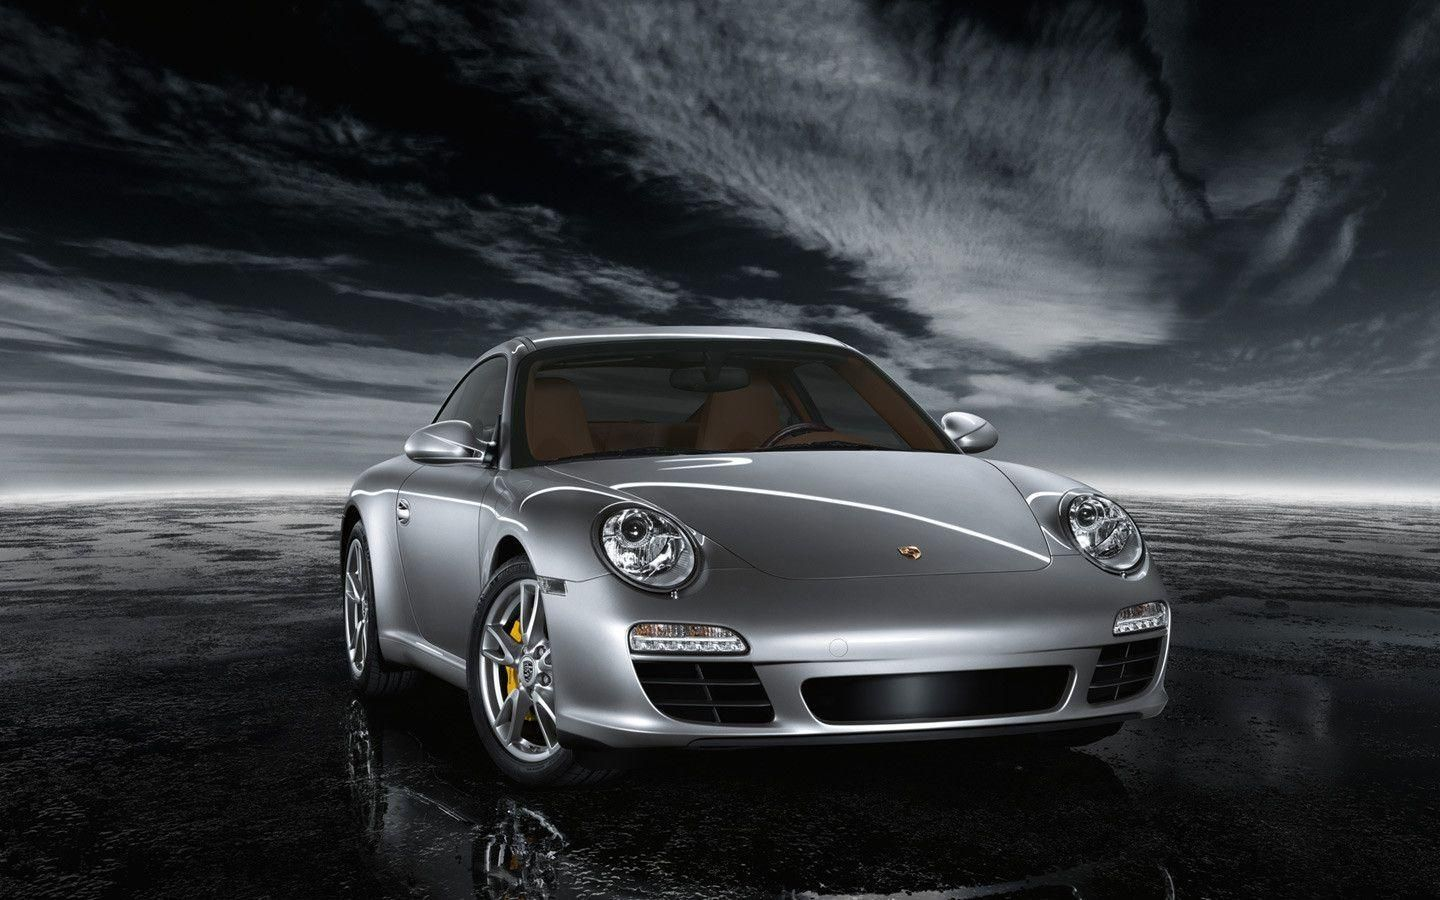 Porsche Car Full Hd Wallpapers Free Download 53 Full Hd Wallpaper Porsche Cars Car